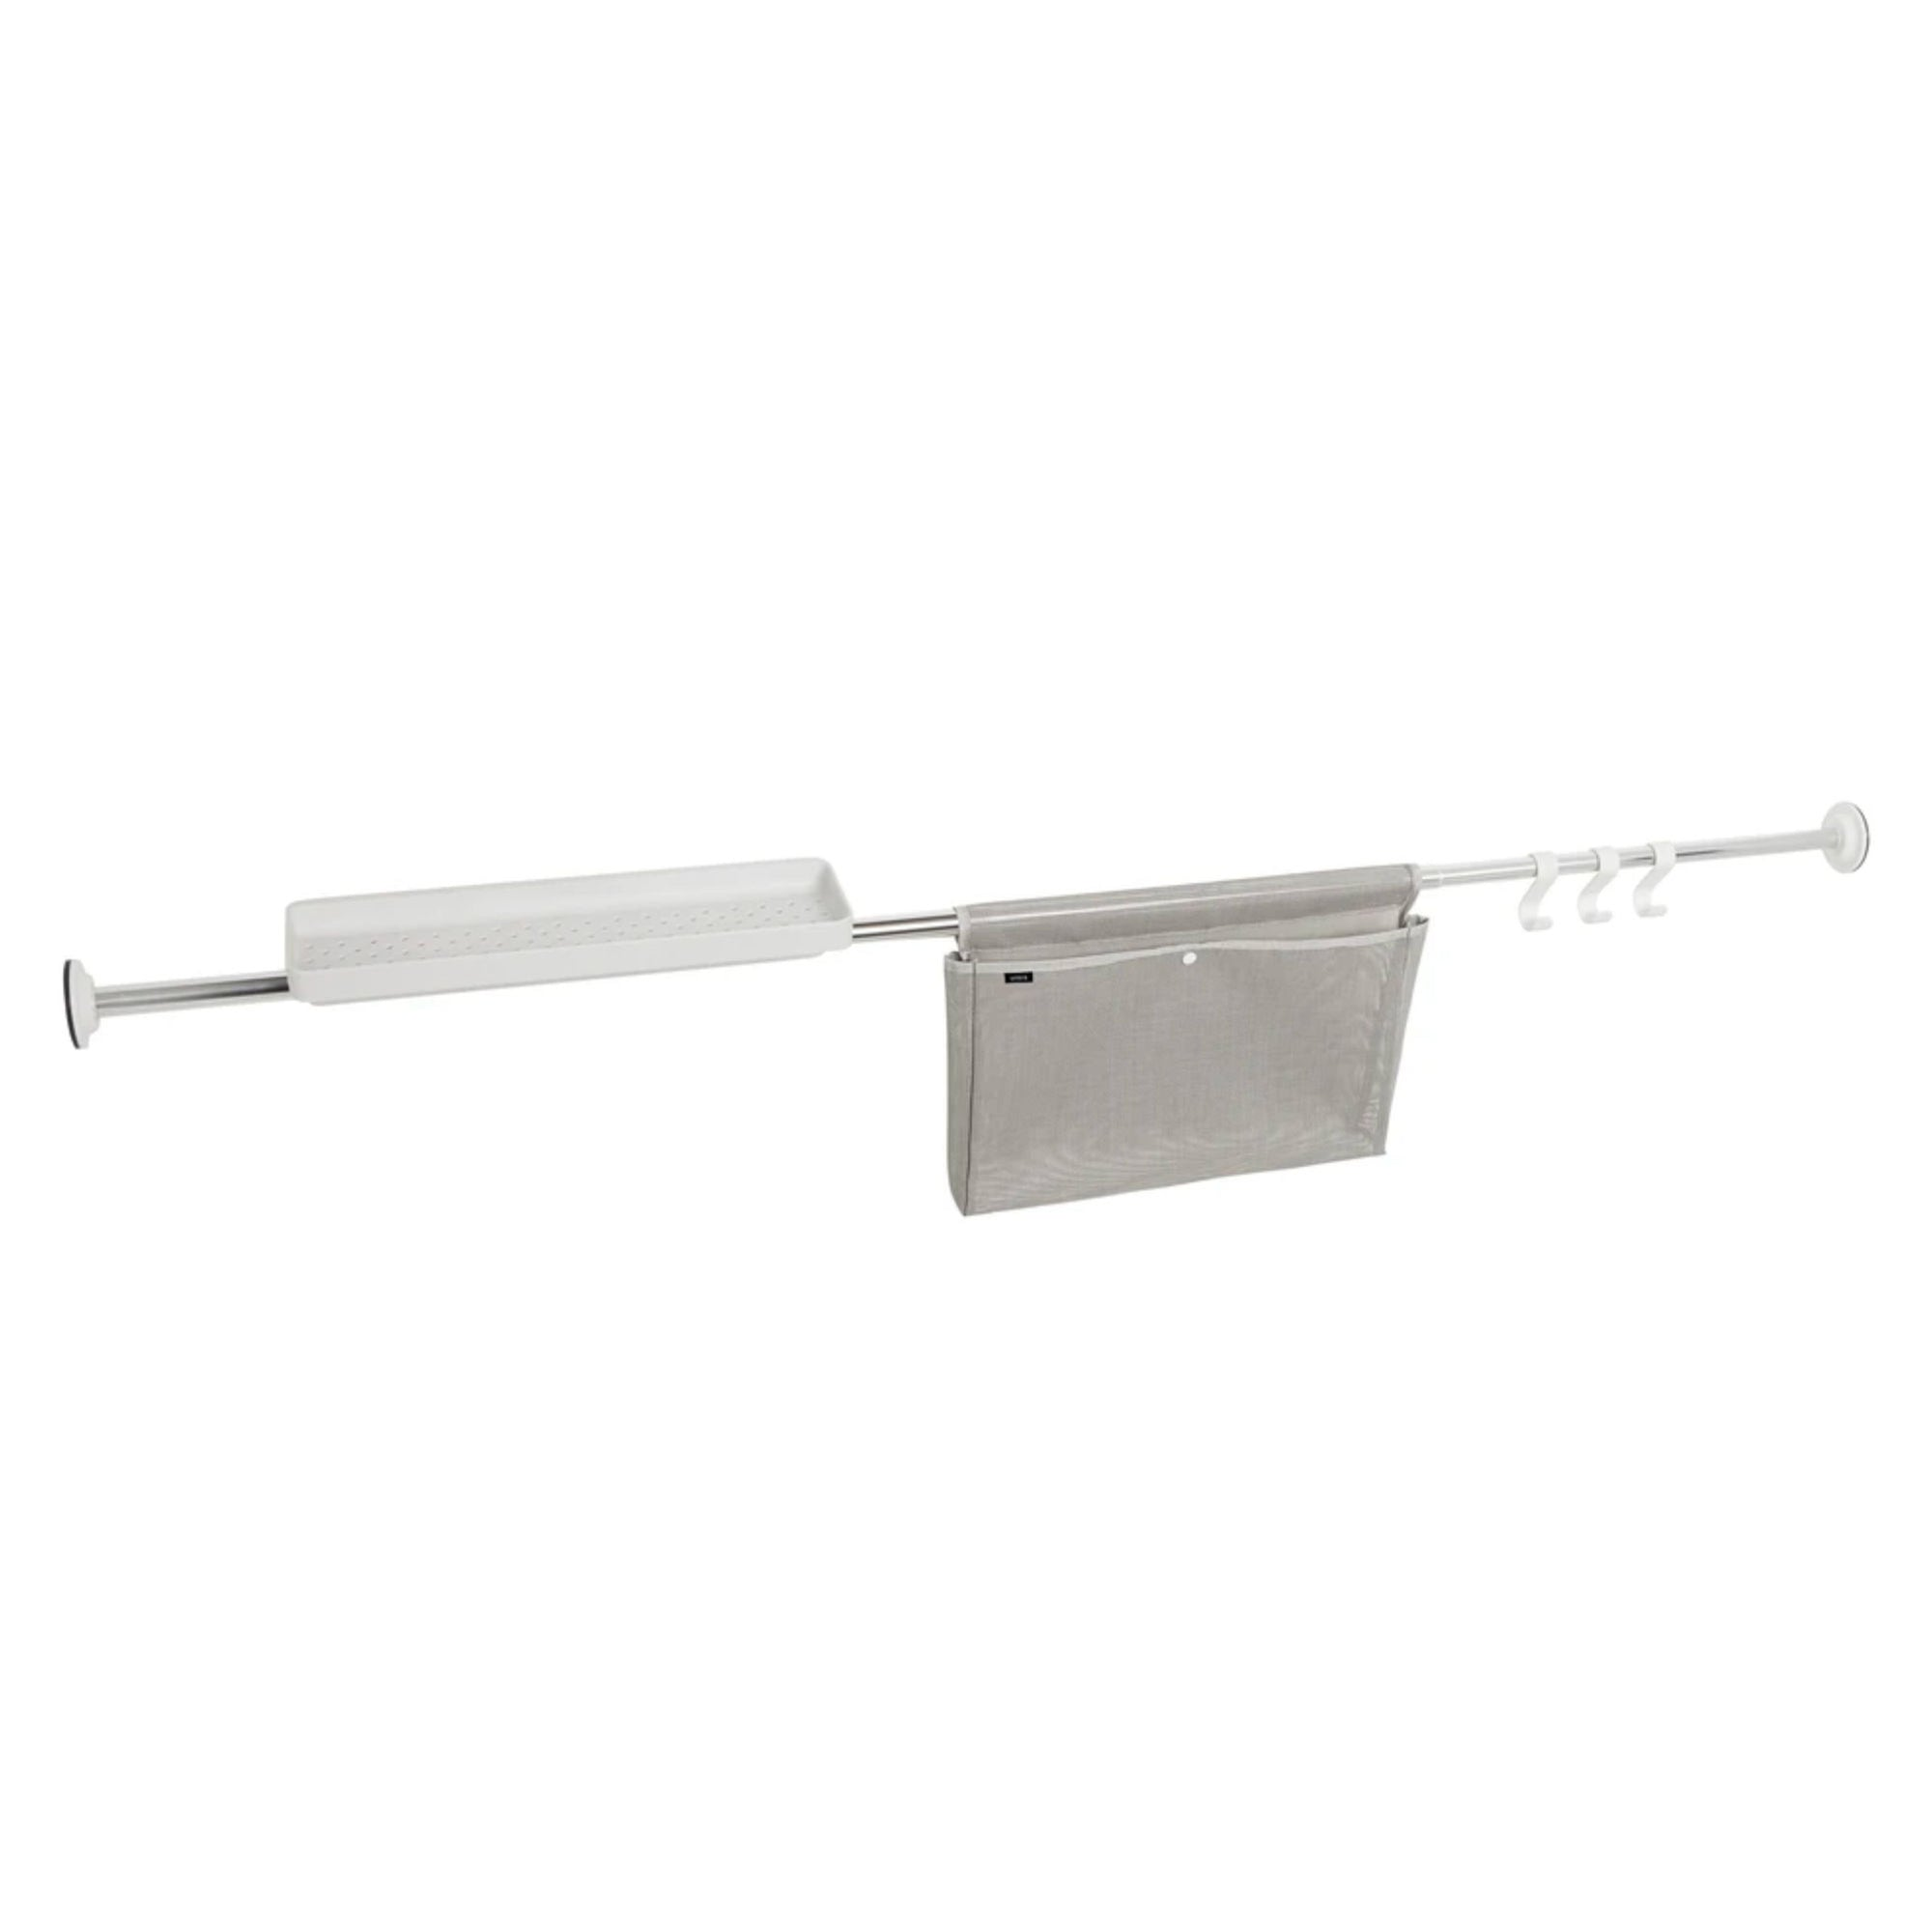 Umbra Surelock shower storage rod